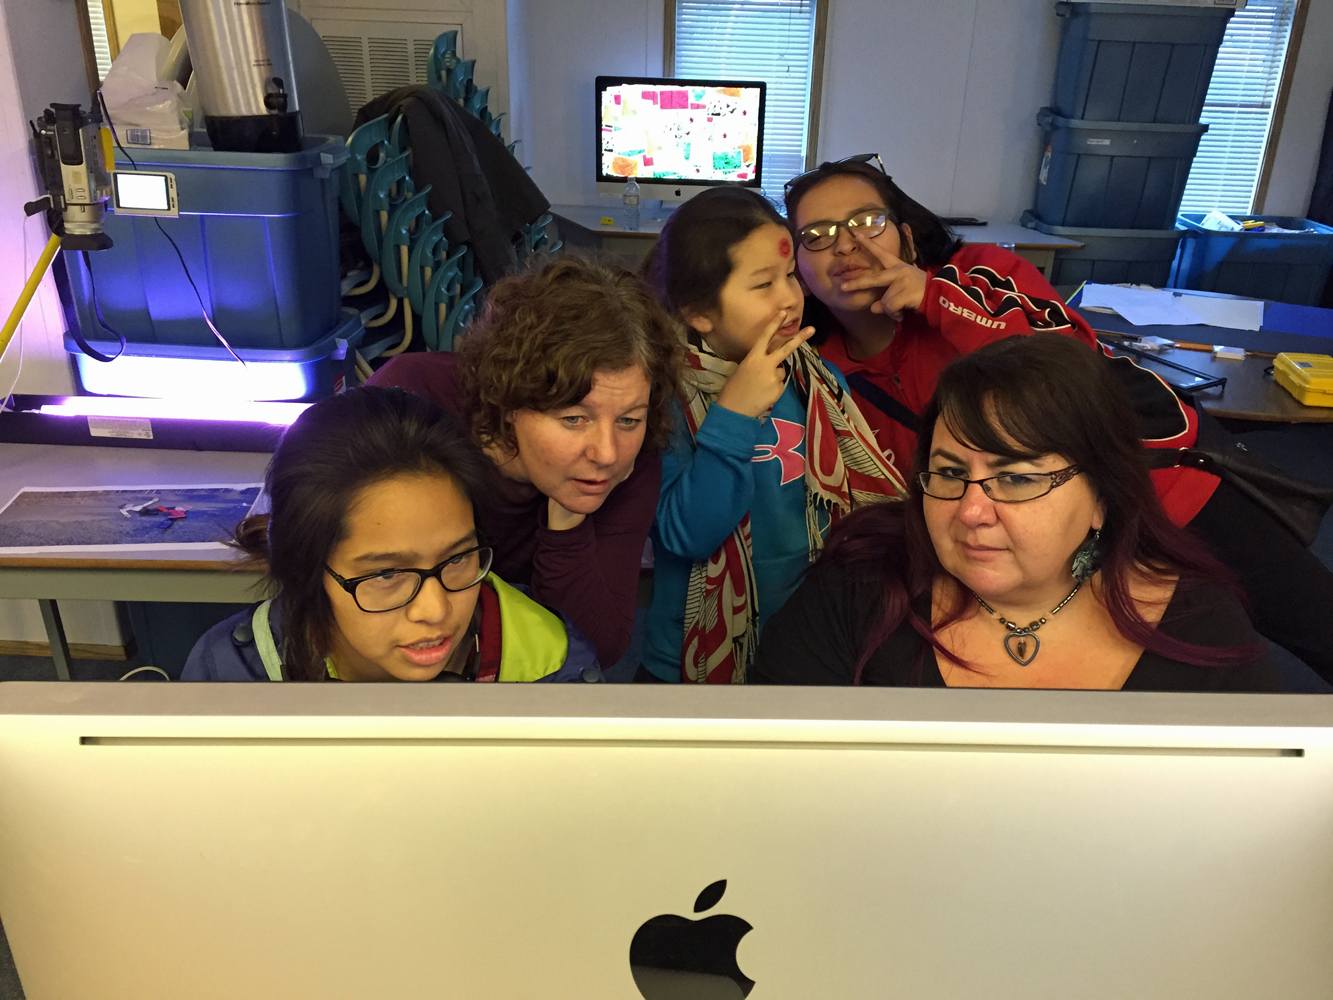 Principal Jillian and Teacher Leah check out Thelma's latest edit (While Emma and Kelly ham it up)